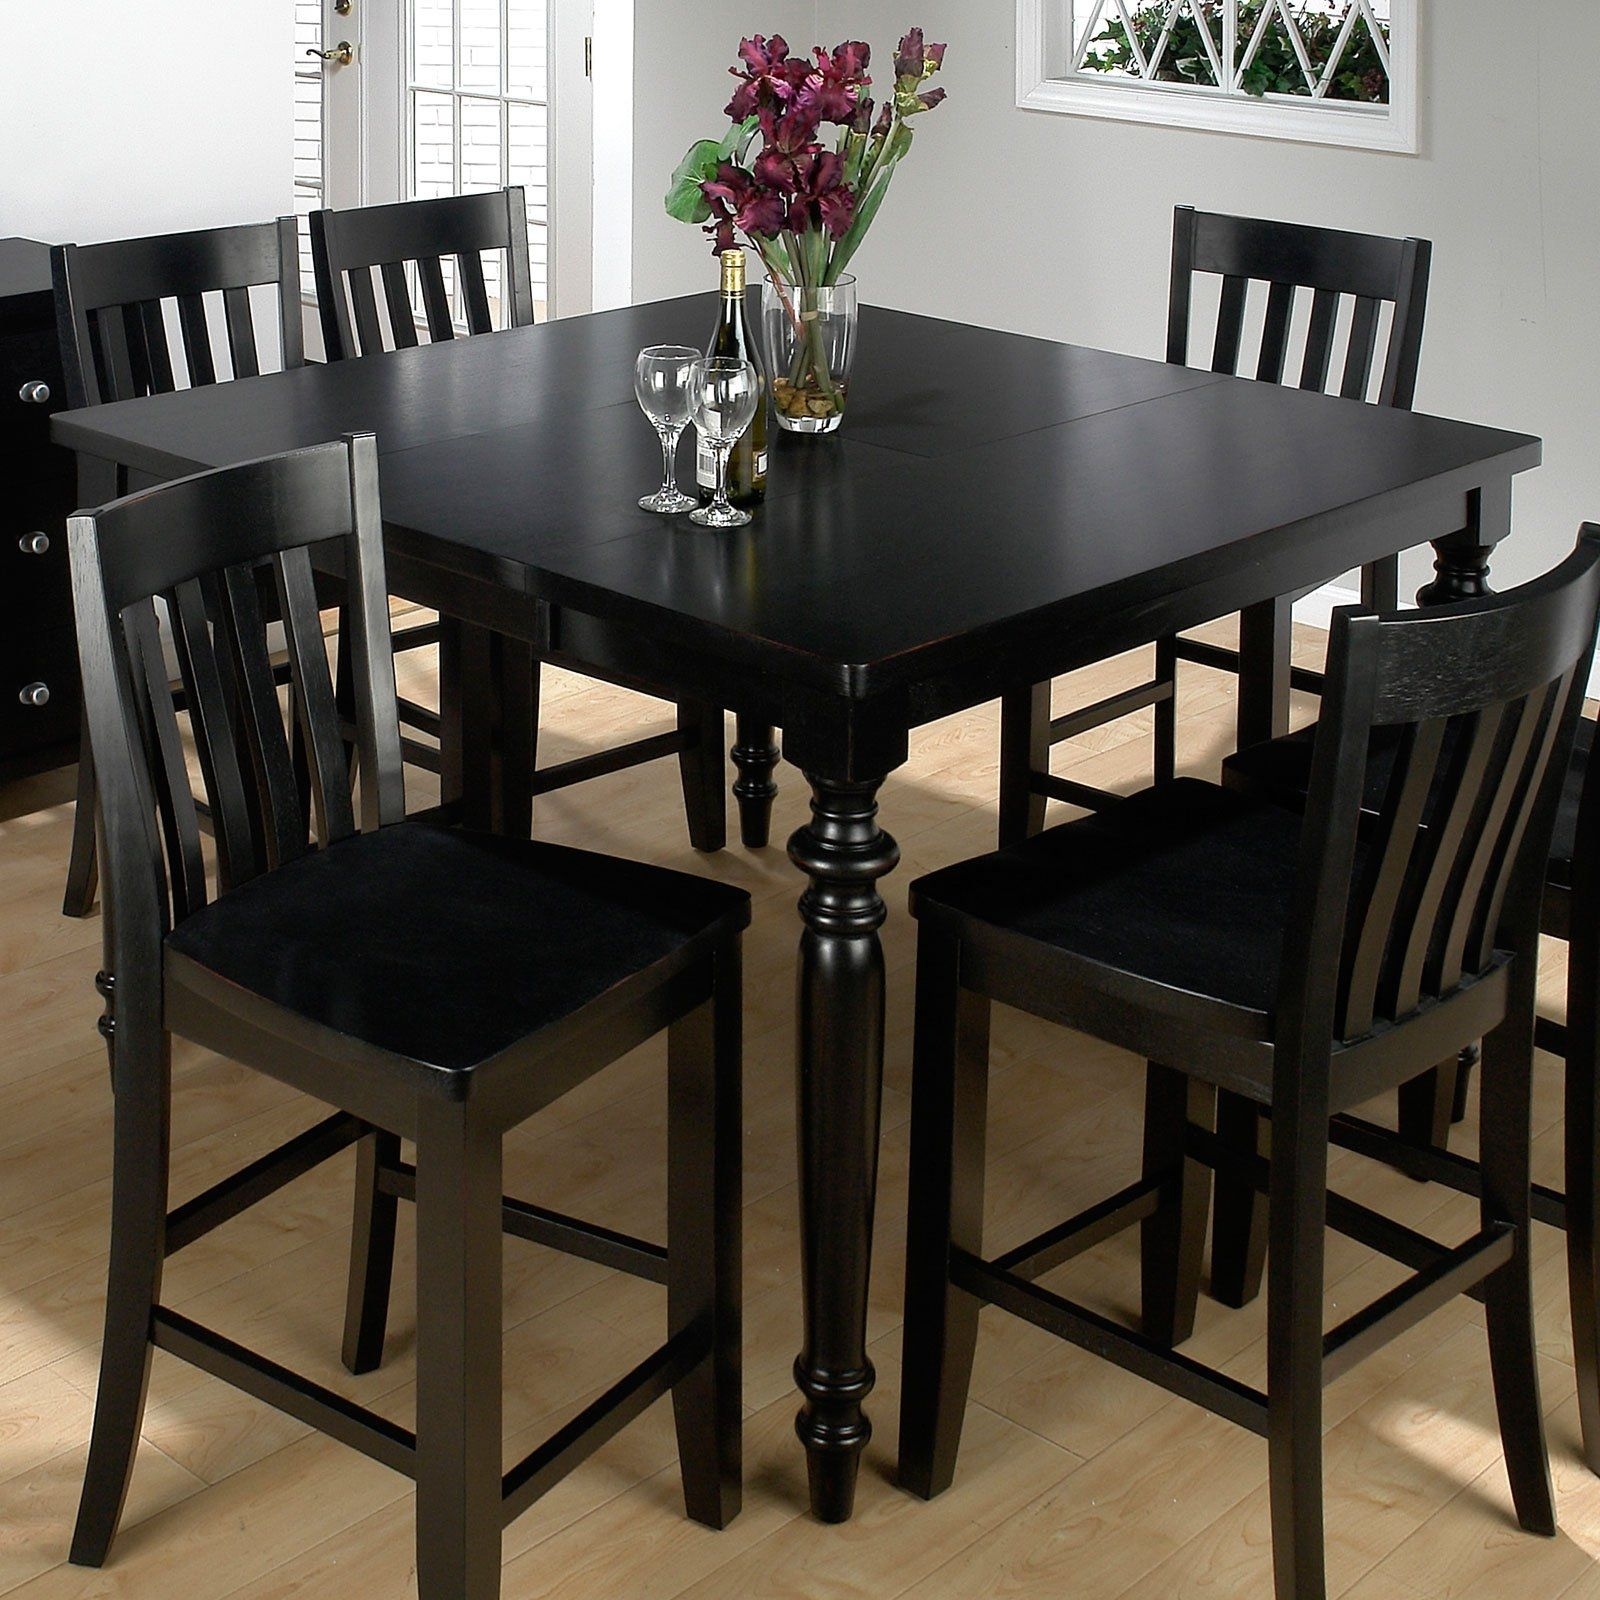 Tall Black Kitchen Table And Chairs | http ...